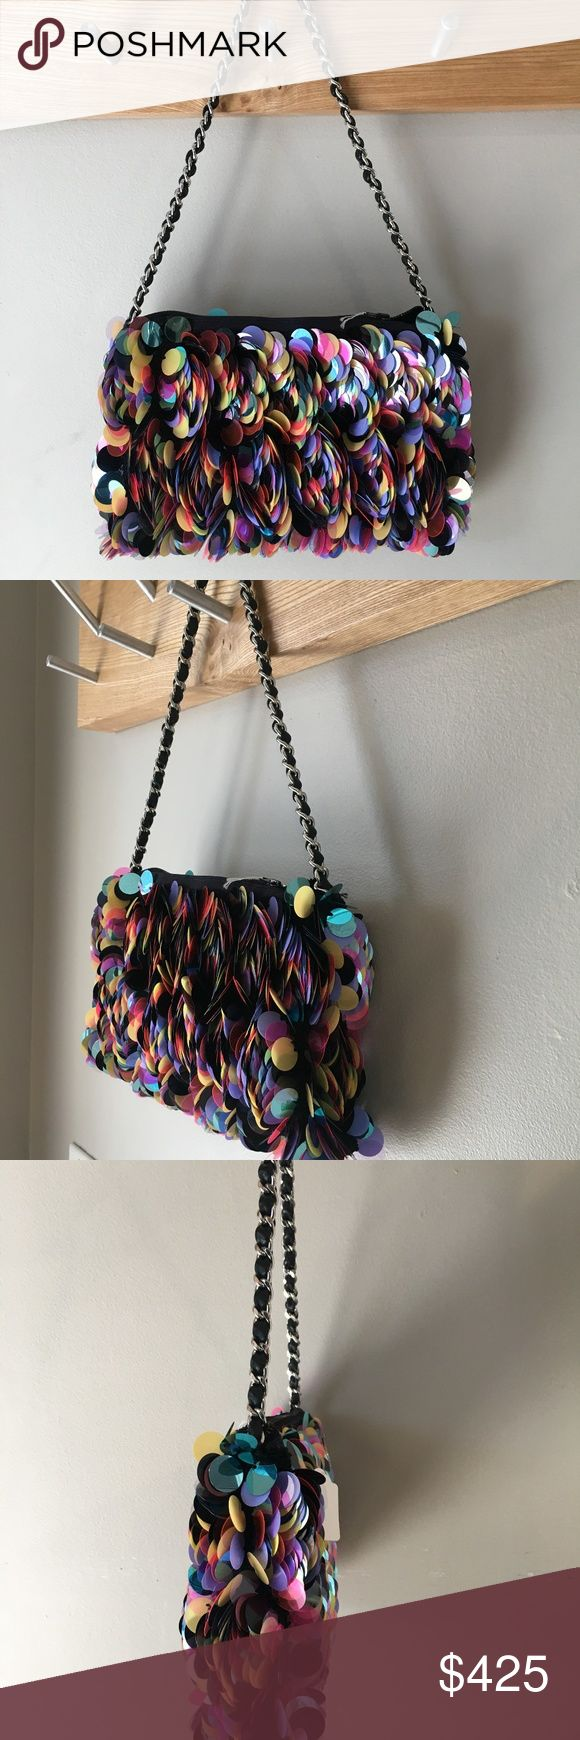 Paillete Multicolor Italian Handcrafted ONIQ solid sequenced handbag.  One of a kind. ONIQ Bags Clutches & Wristlets